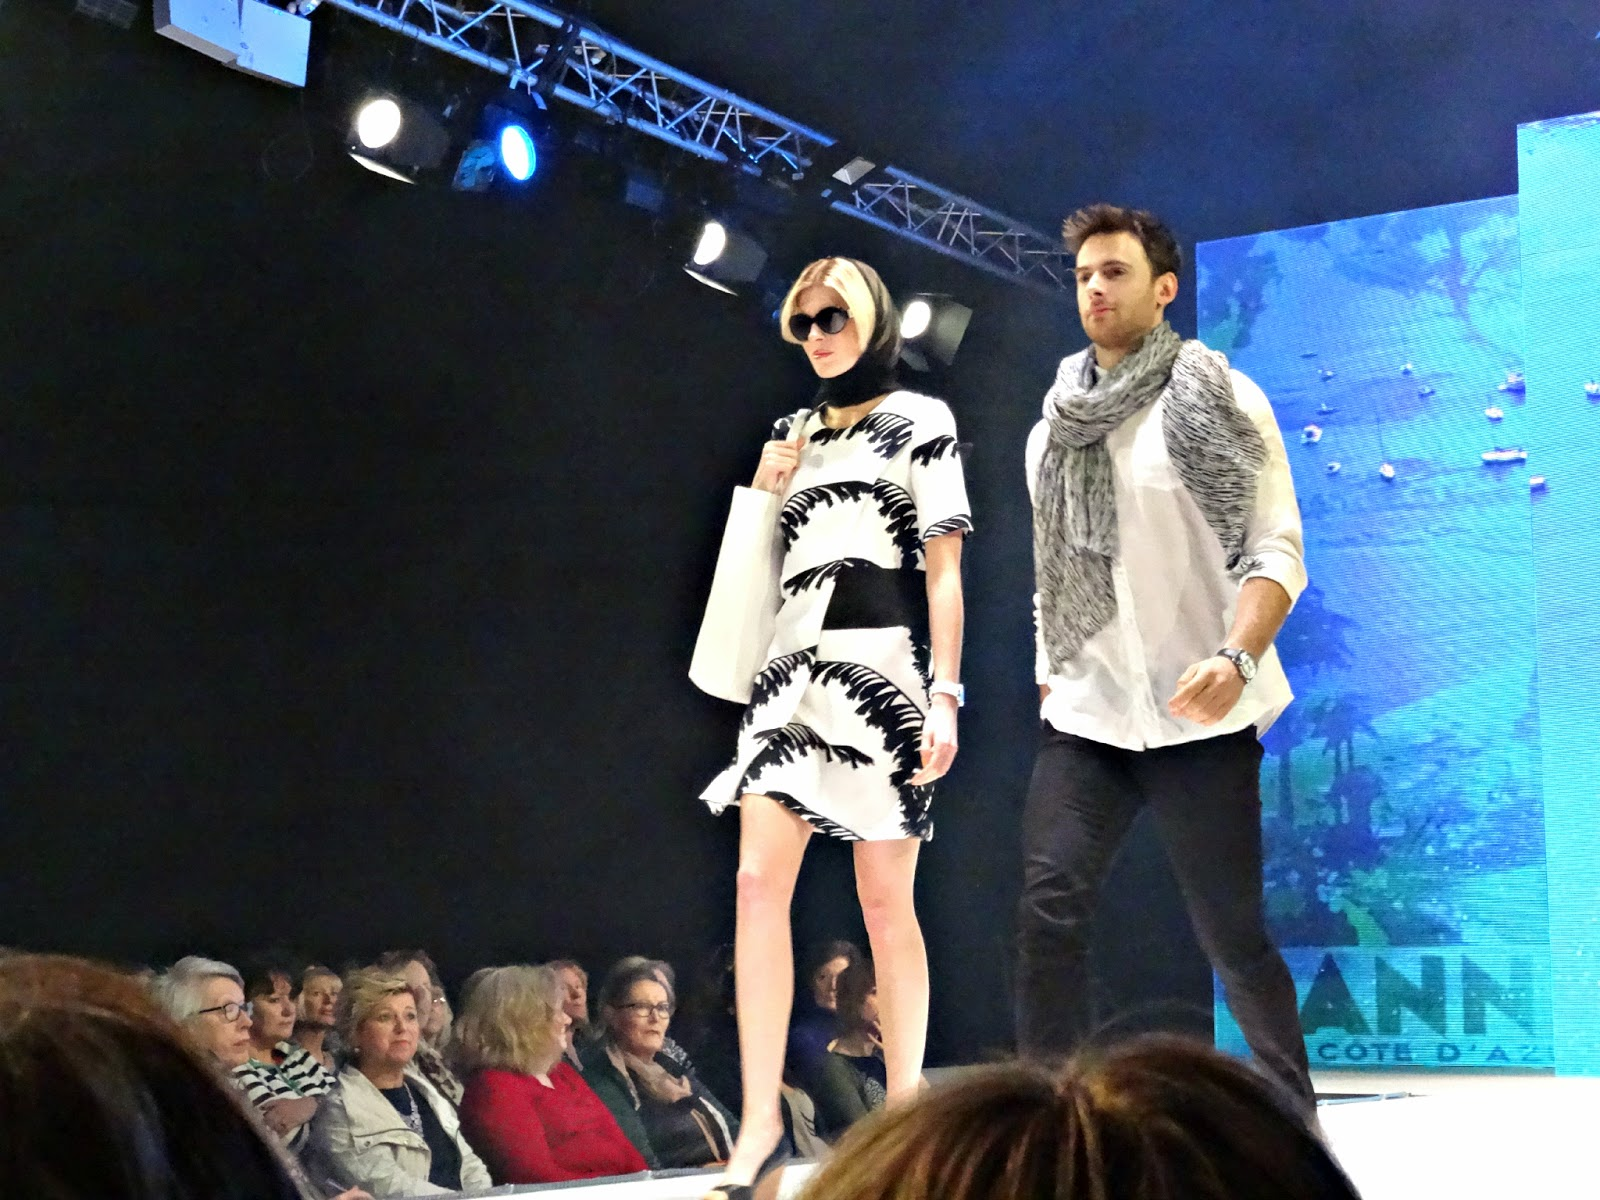 Monochrome Look at Bristol Fashion Week